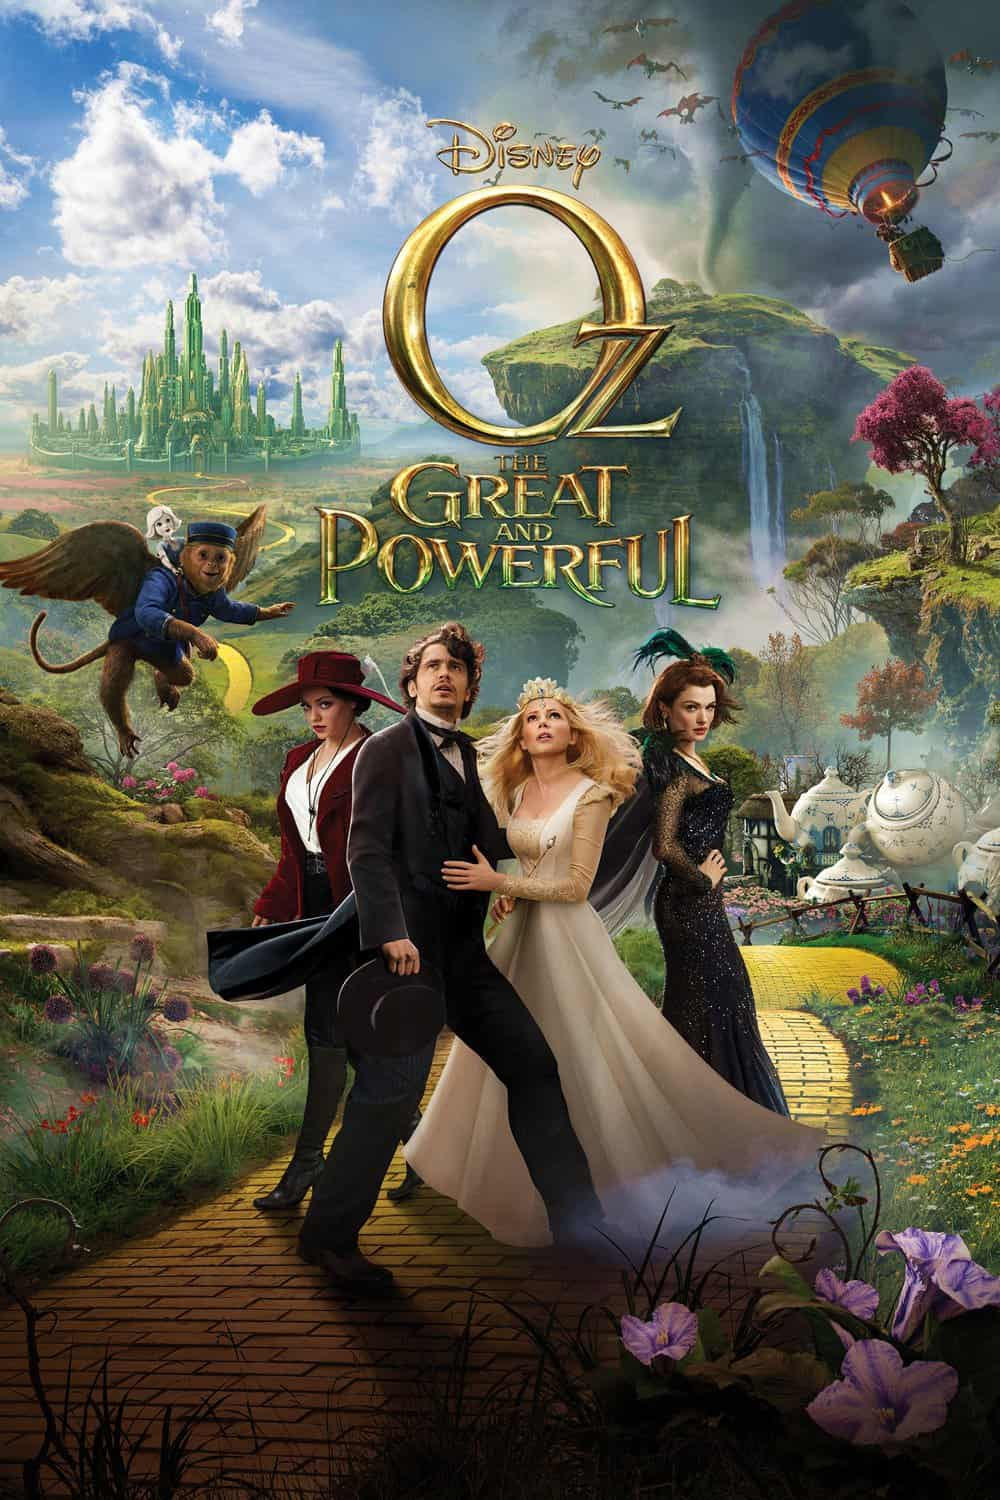 Oz the Great and Powerful, 2013